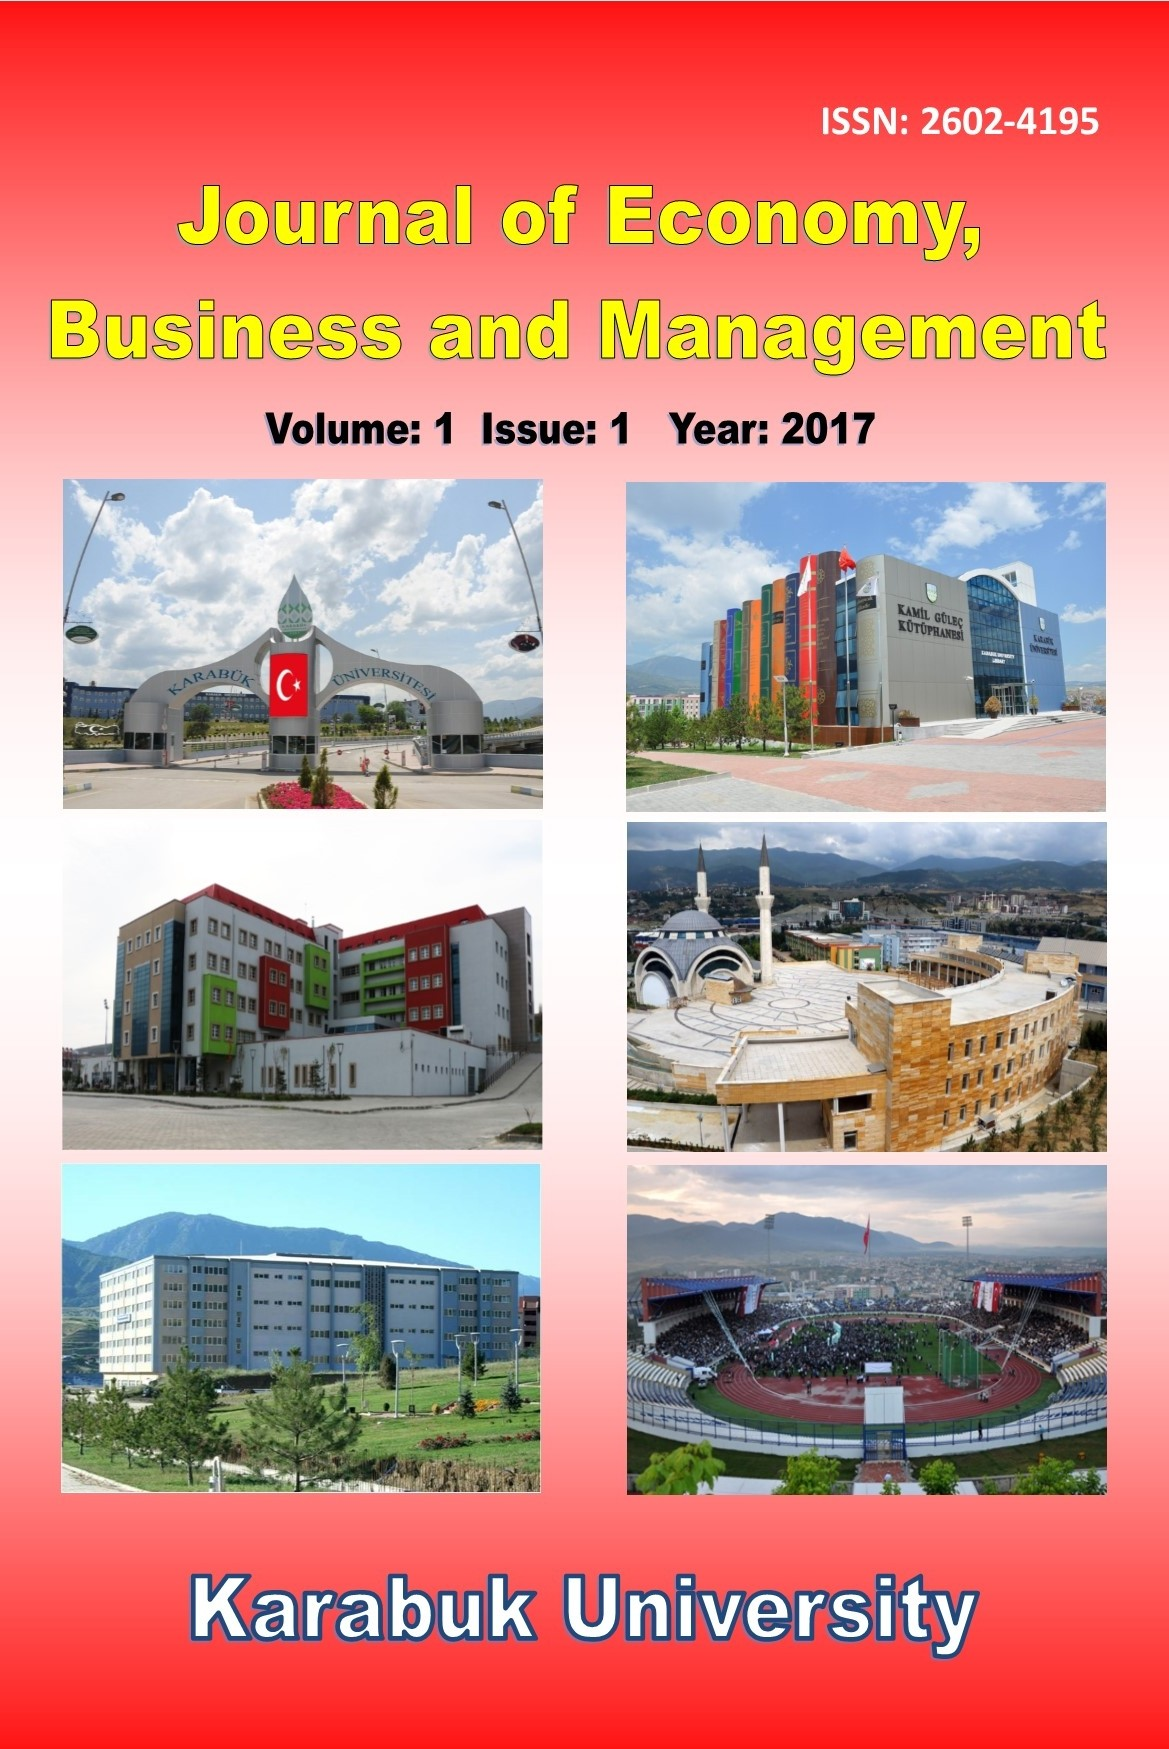 Journal of Economy Business and Management